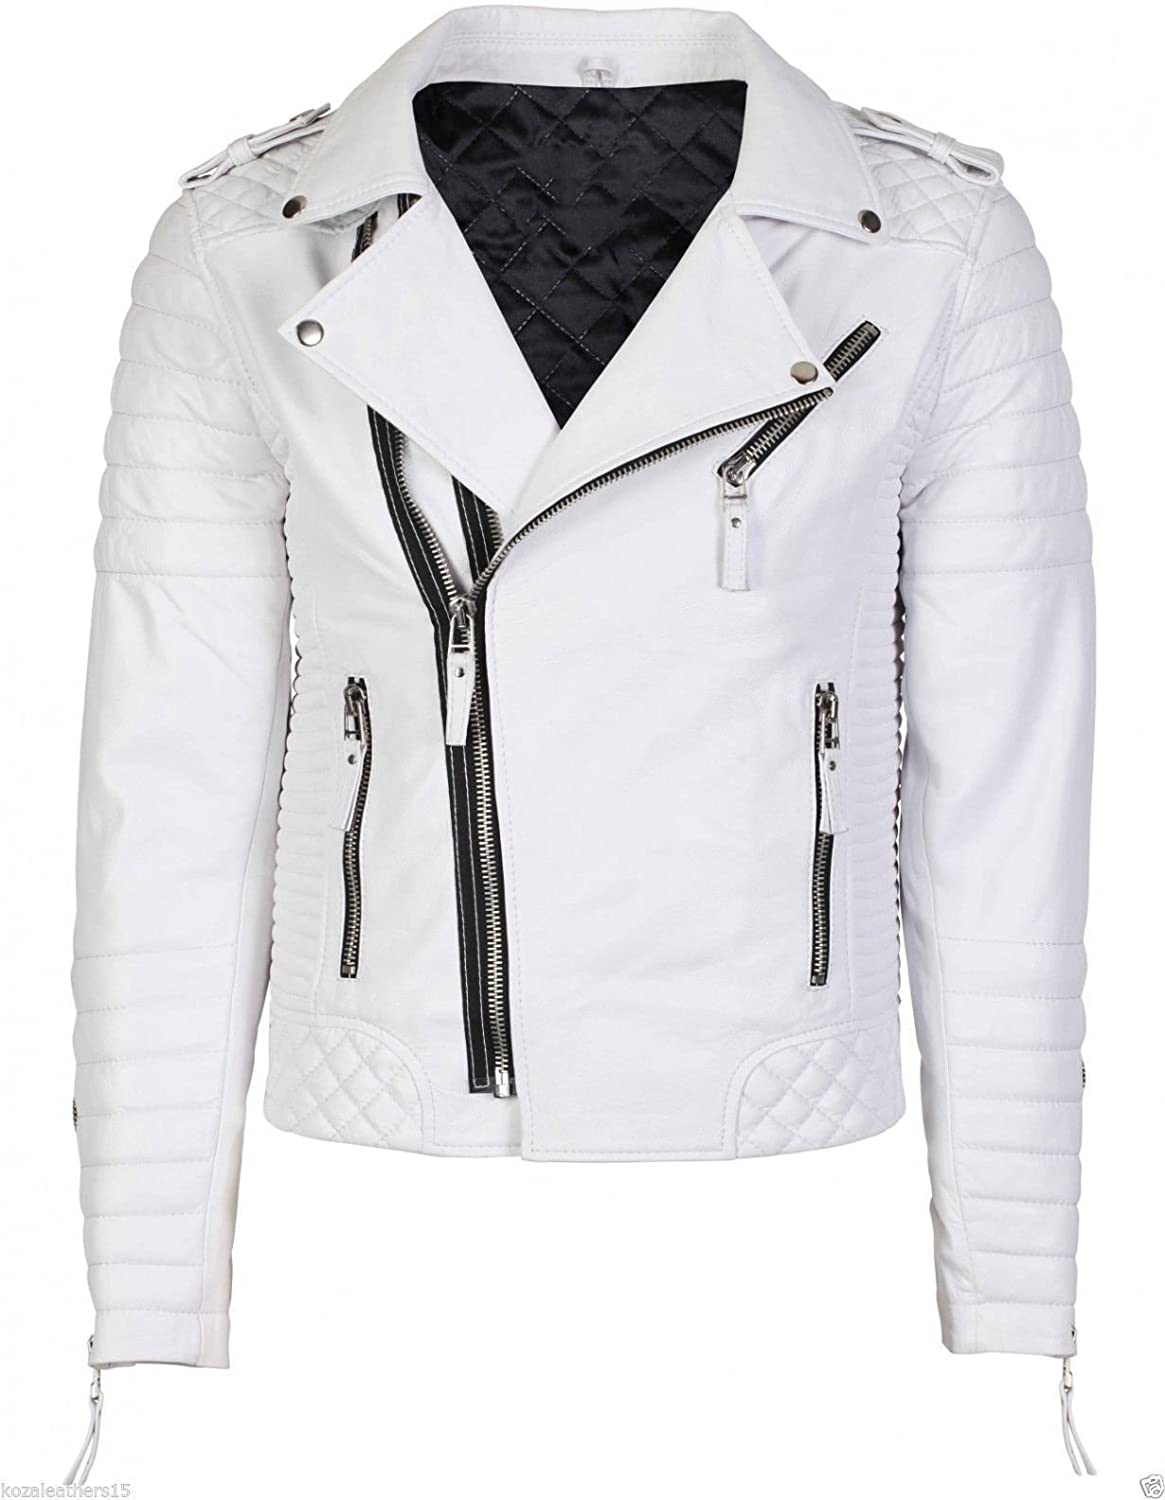 Erha Accessories Women's Kennedy Quilted Asymmetrical Cropped Biker White Leather Jacket